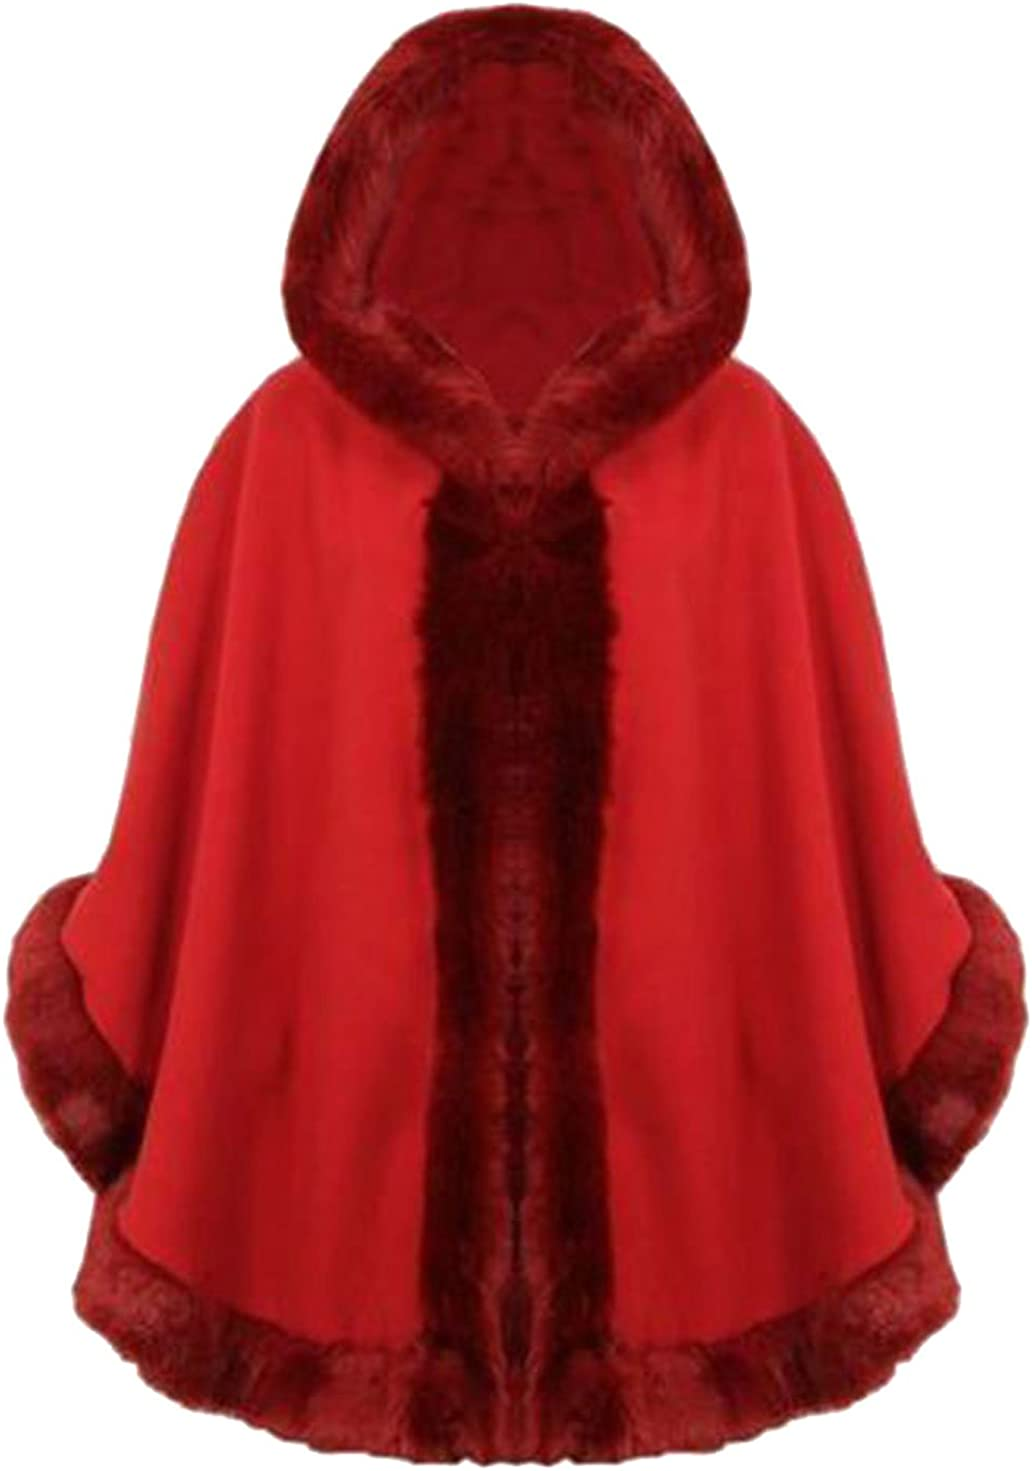 Divadames Womens Fur Lined Hooded Cape Ladies Winter Overall Coat Poncho Jacket One Size Fits UK 8-14